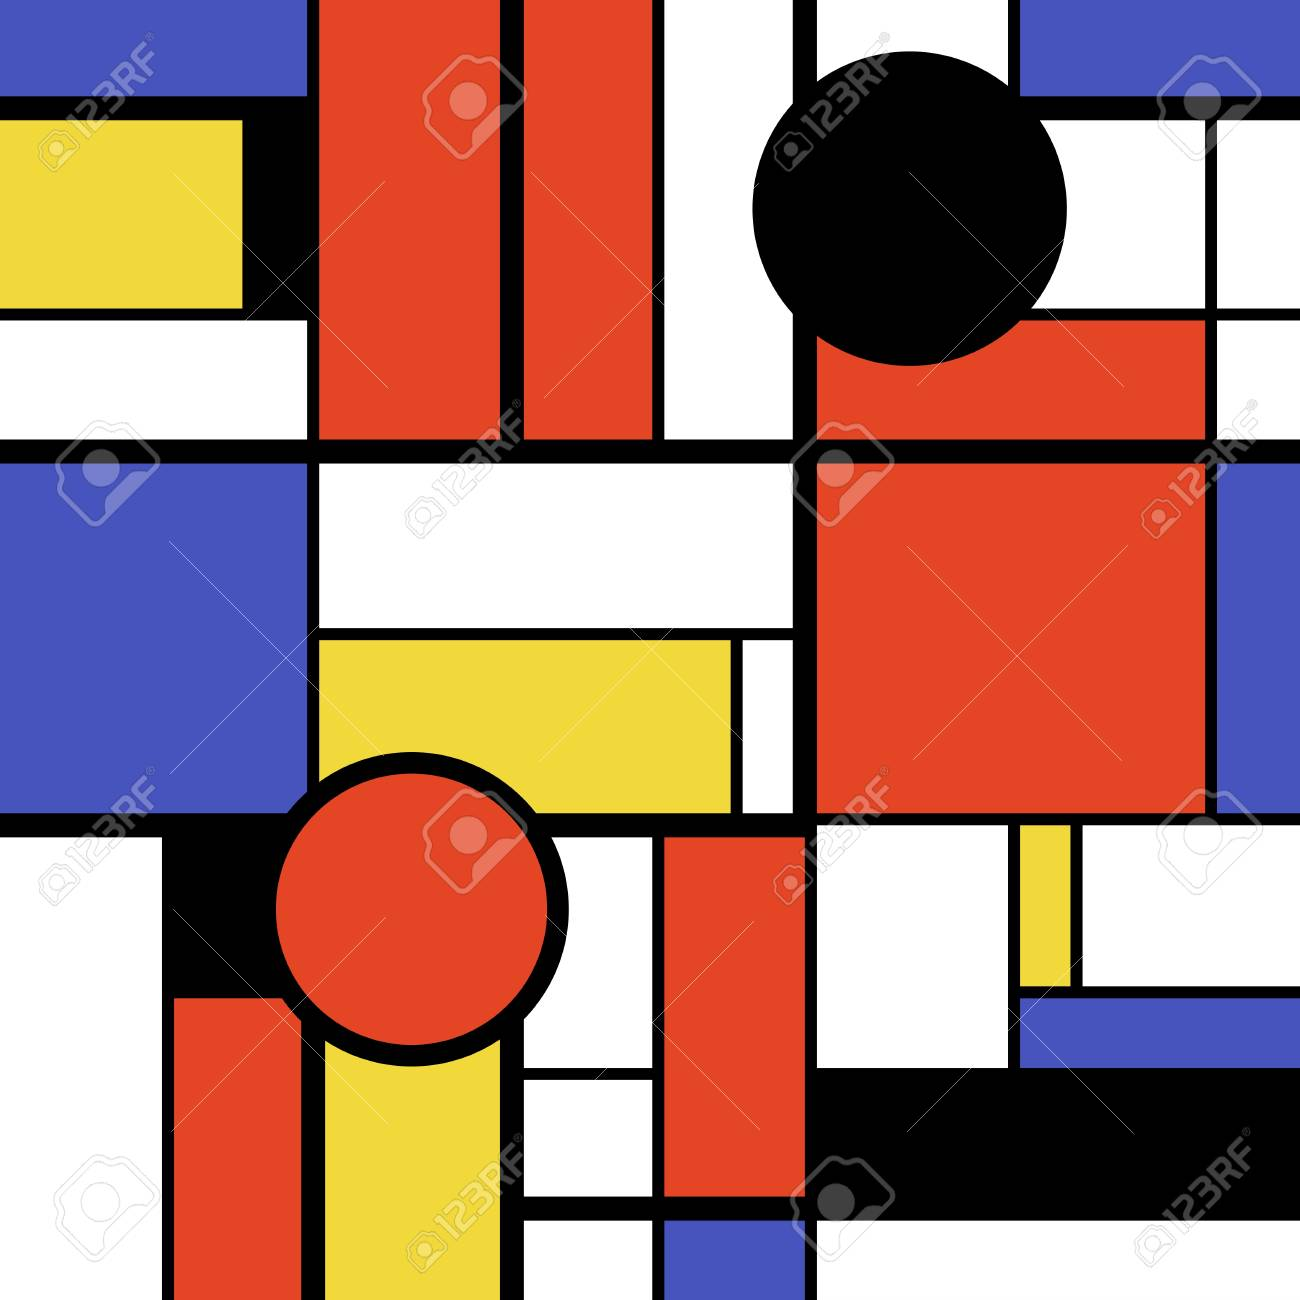 Modern Art Abstract Colorful Circles Squares And Rectangles